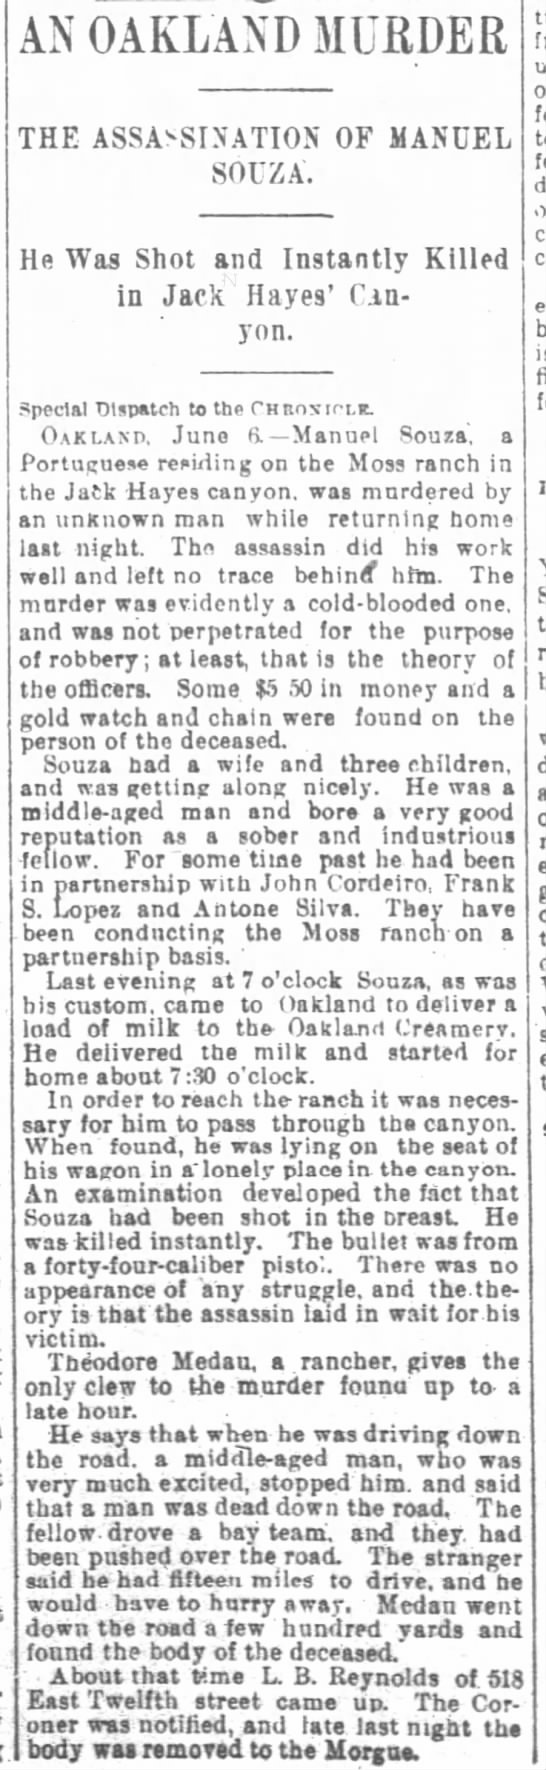 An Oakland Murder - He was Shot and Instantly Killed in Jack Hayes' Cayon - June 07, 1894 -